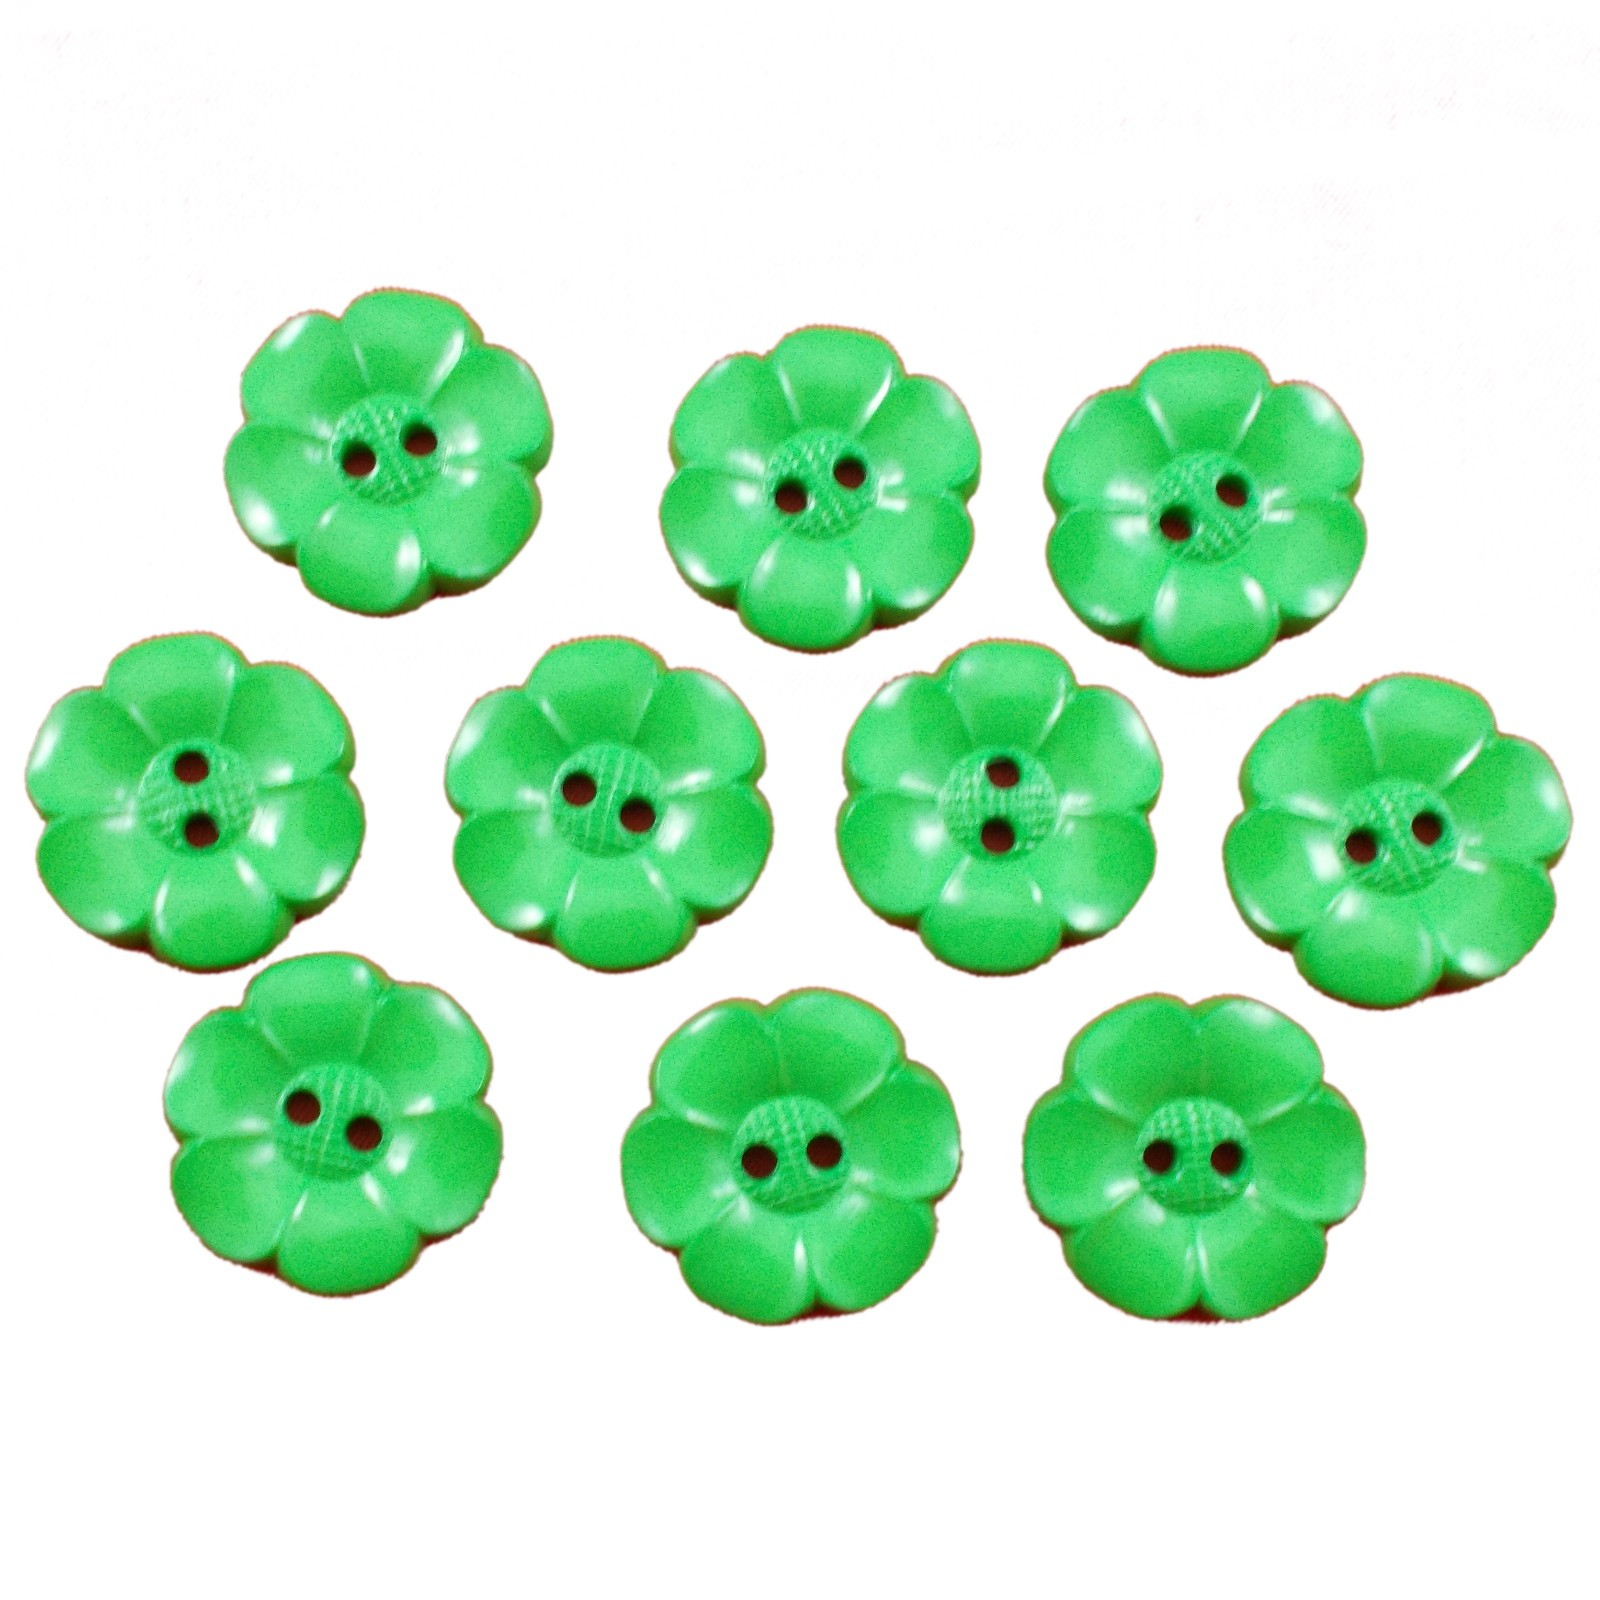 Large Daisy Flower Feature Button 38mm Green Pack of 10